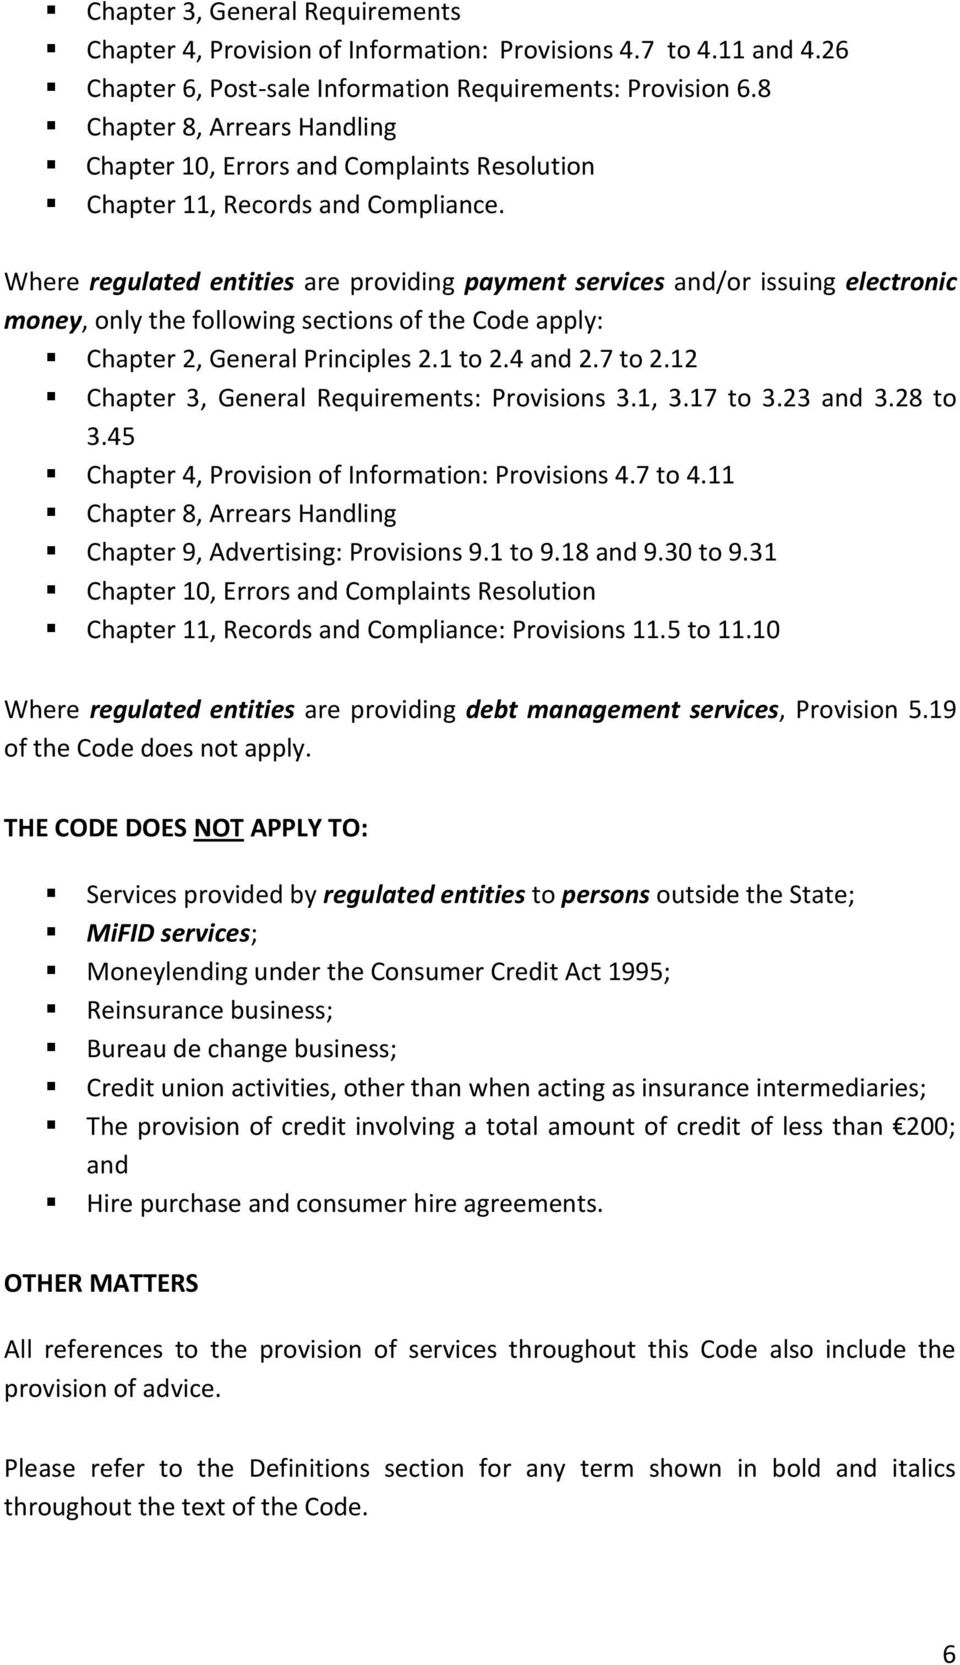 Where regulated entities are providing payment services and/or issuing electronic money, only the following sections of the Code apply: Chapter 2, General Principles 2.1 to 2.4 and 2.7 to 2.